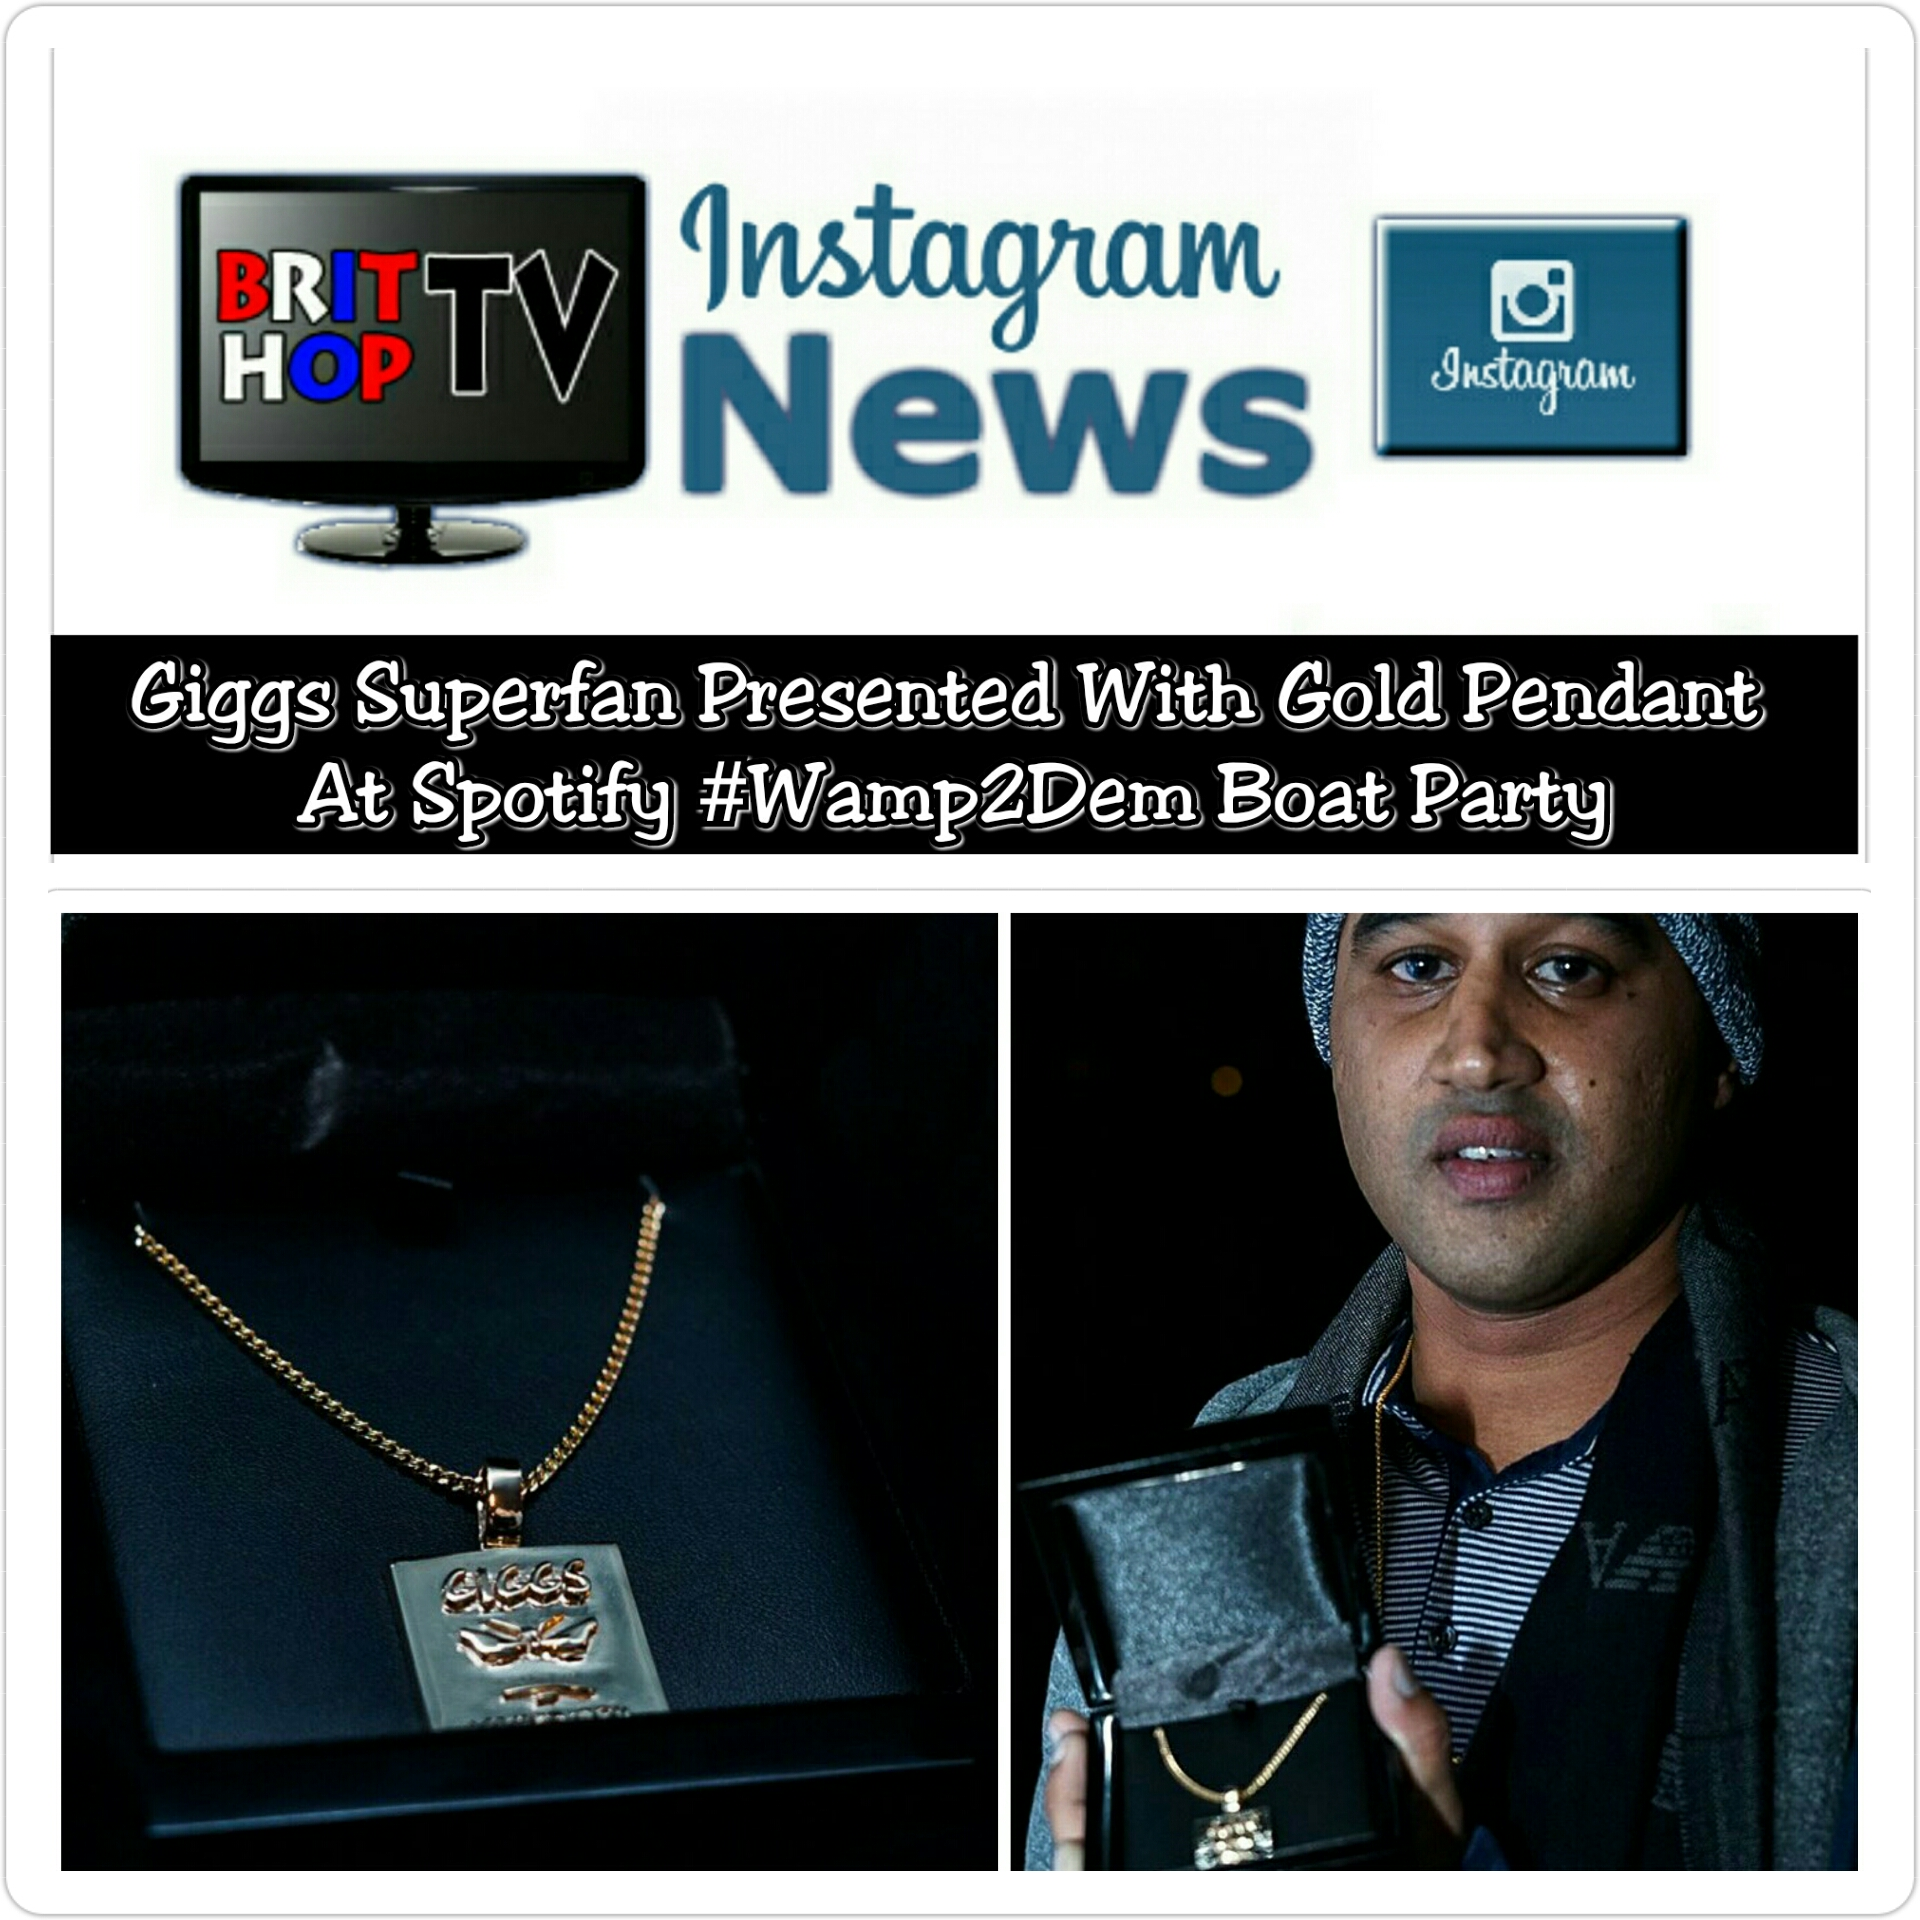 [News] Giggs Superfan Presented With Gold Pendent At Spotify #Wamp2Dem Boat Party | #MusicNews #UKRap #UKHipHop